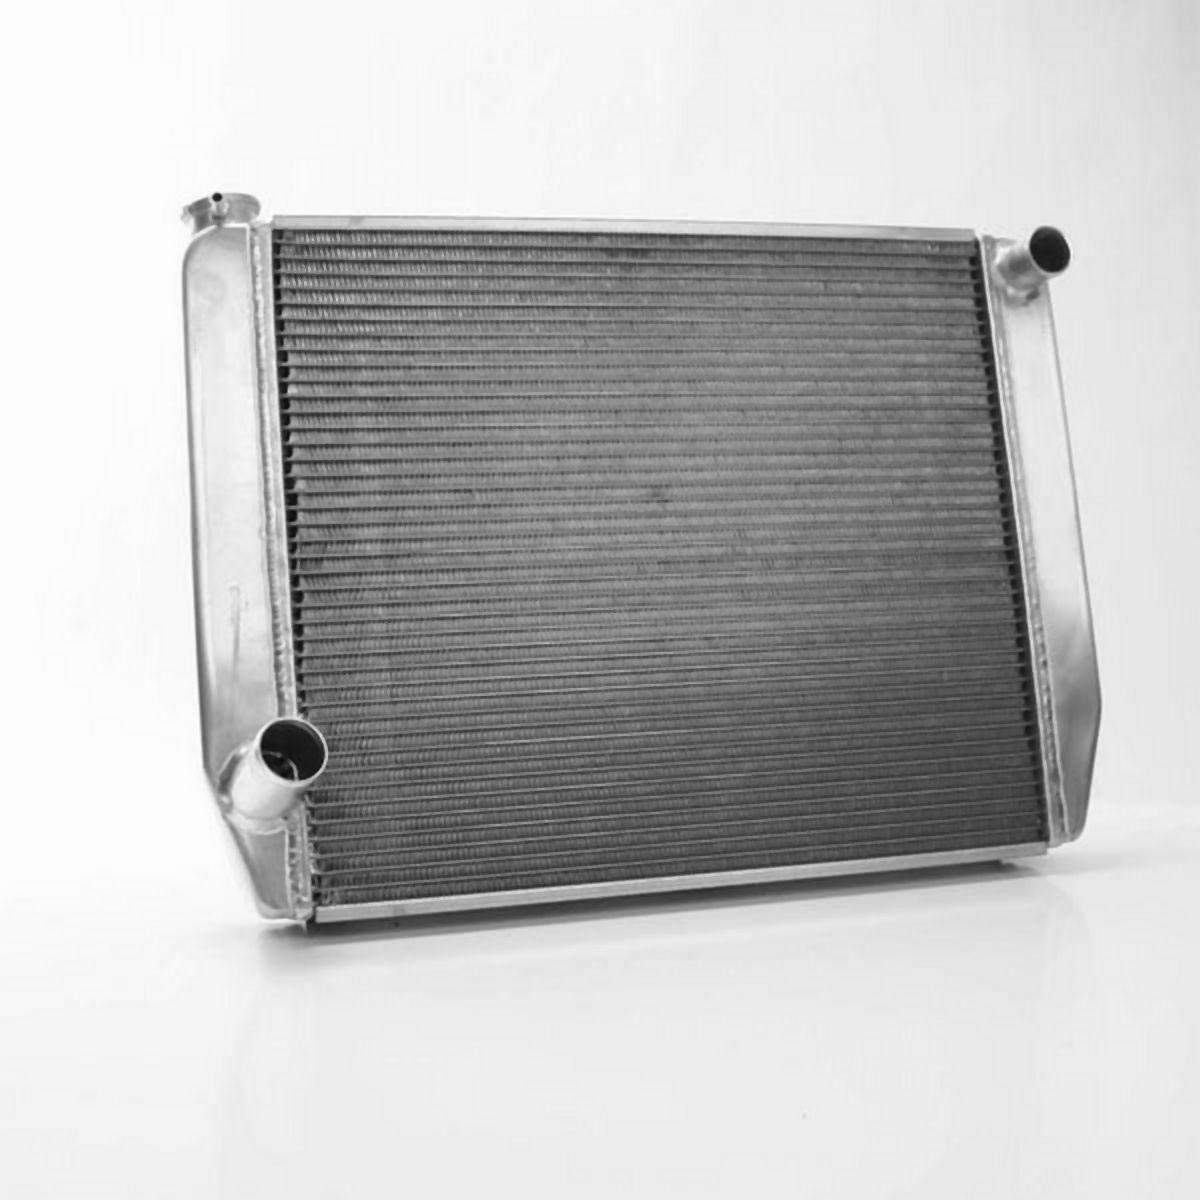 Griffin UniversalFit Radiator,Part Number: 1-56222-XS for All Ford